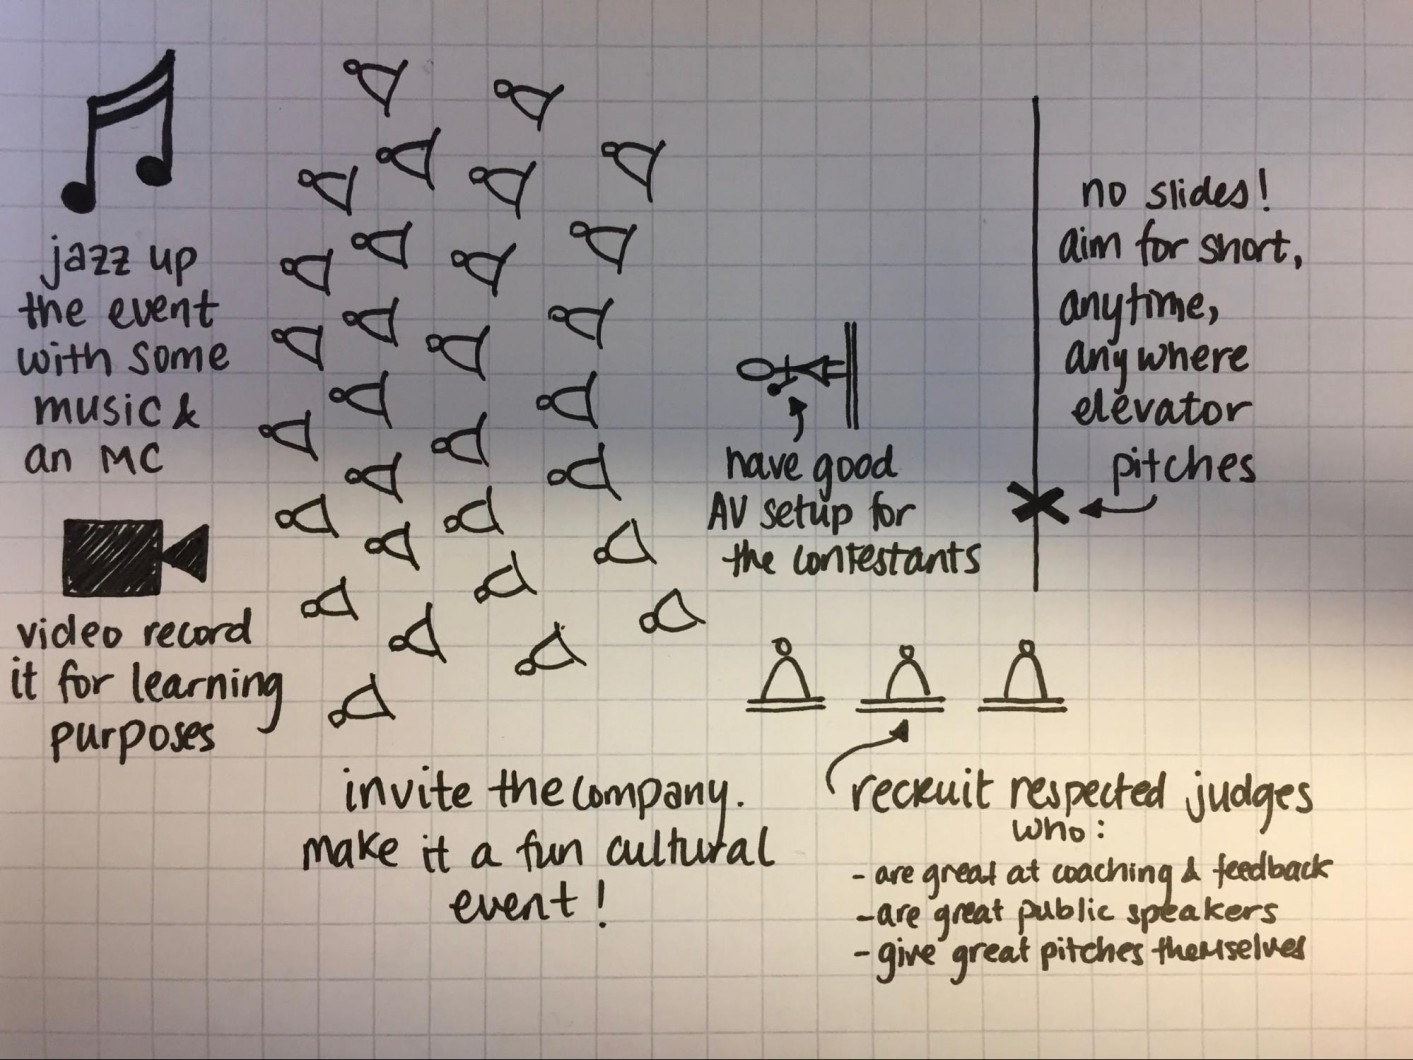 Sketch of how to hold a pitch